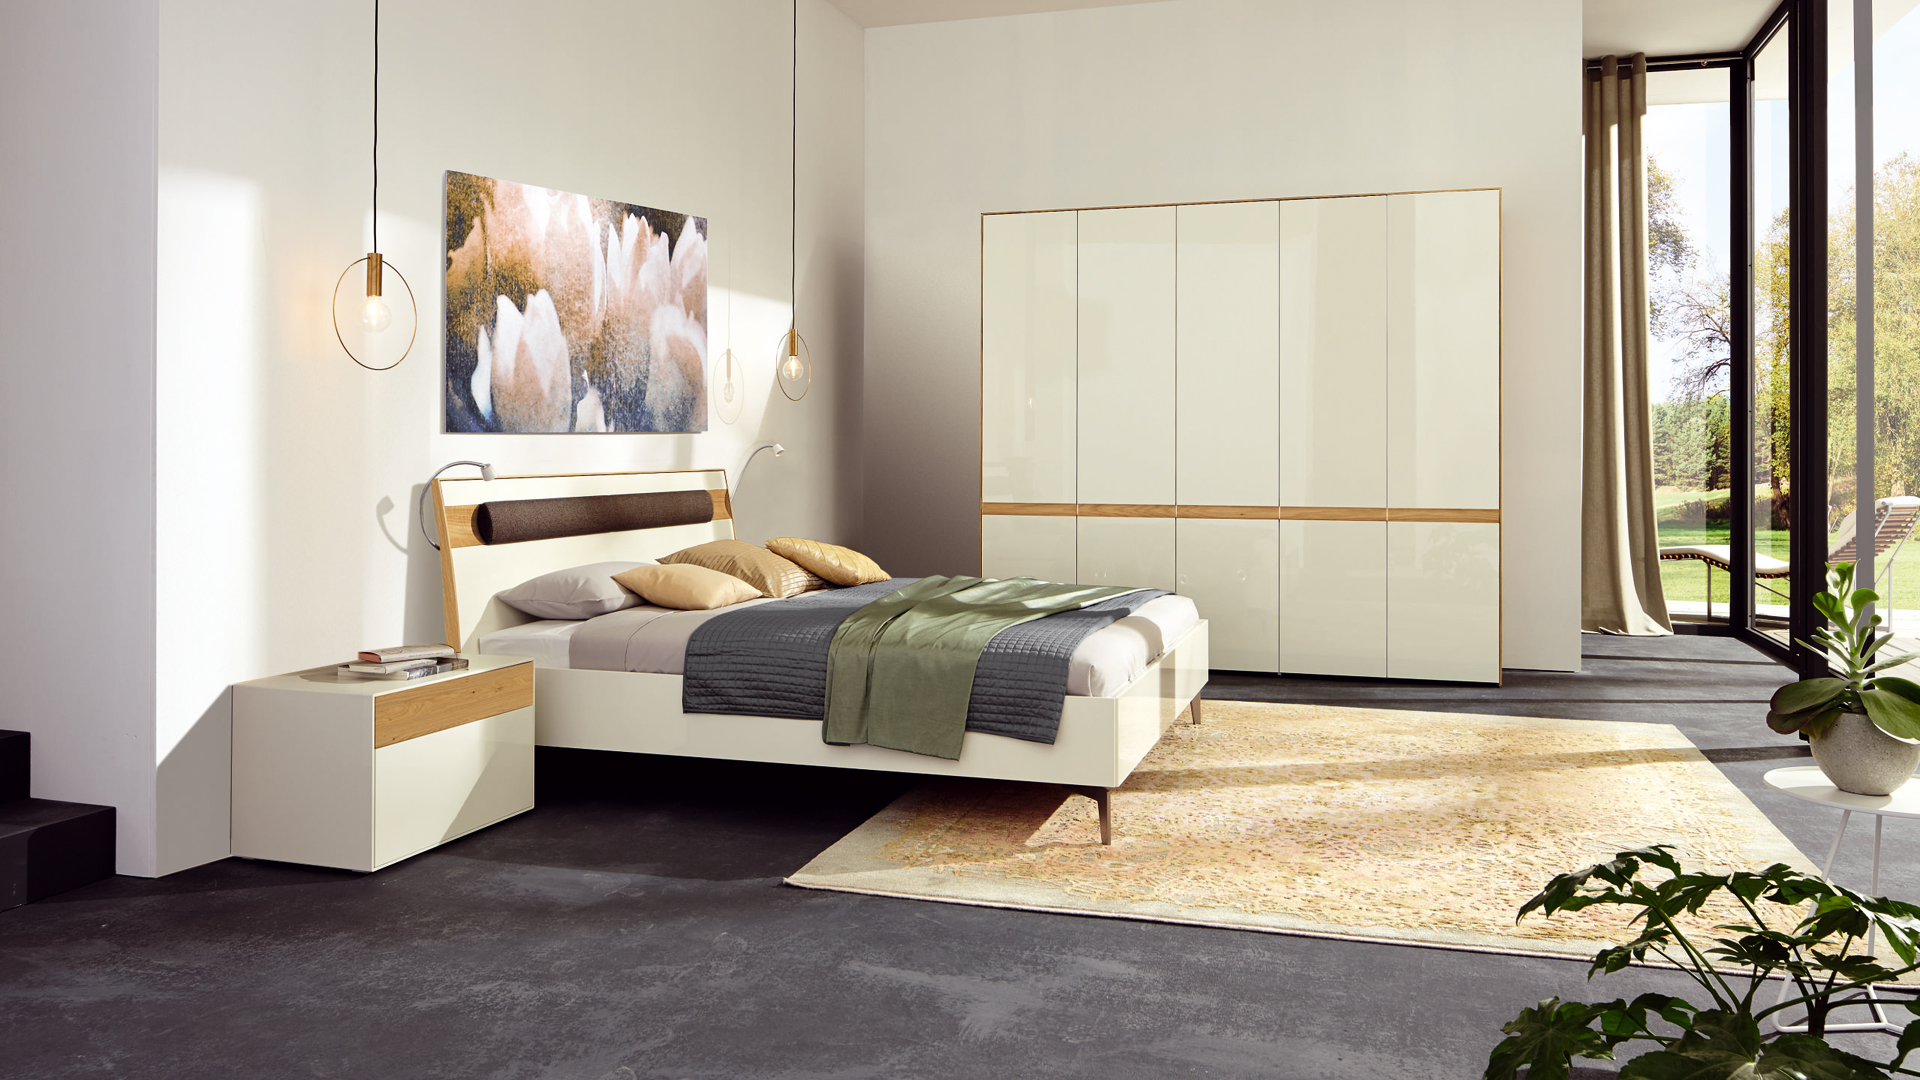 h lsta betten regale und schr nke bei prinz wohnen. Black Bedroom Furniture Sets. Home Design Ideas